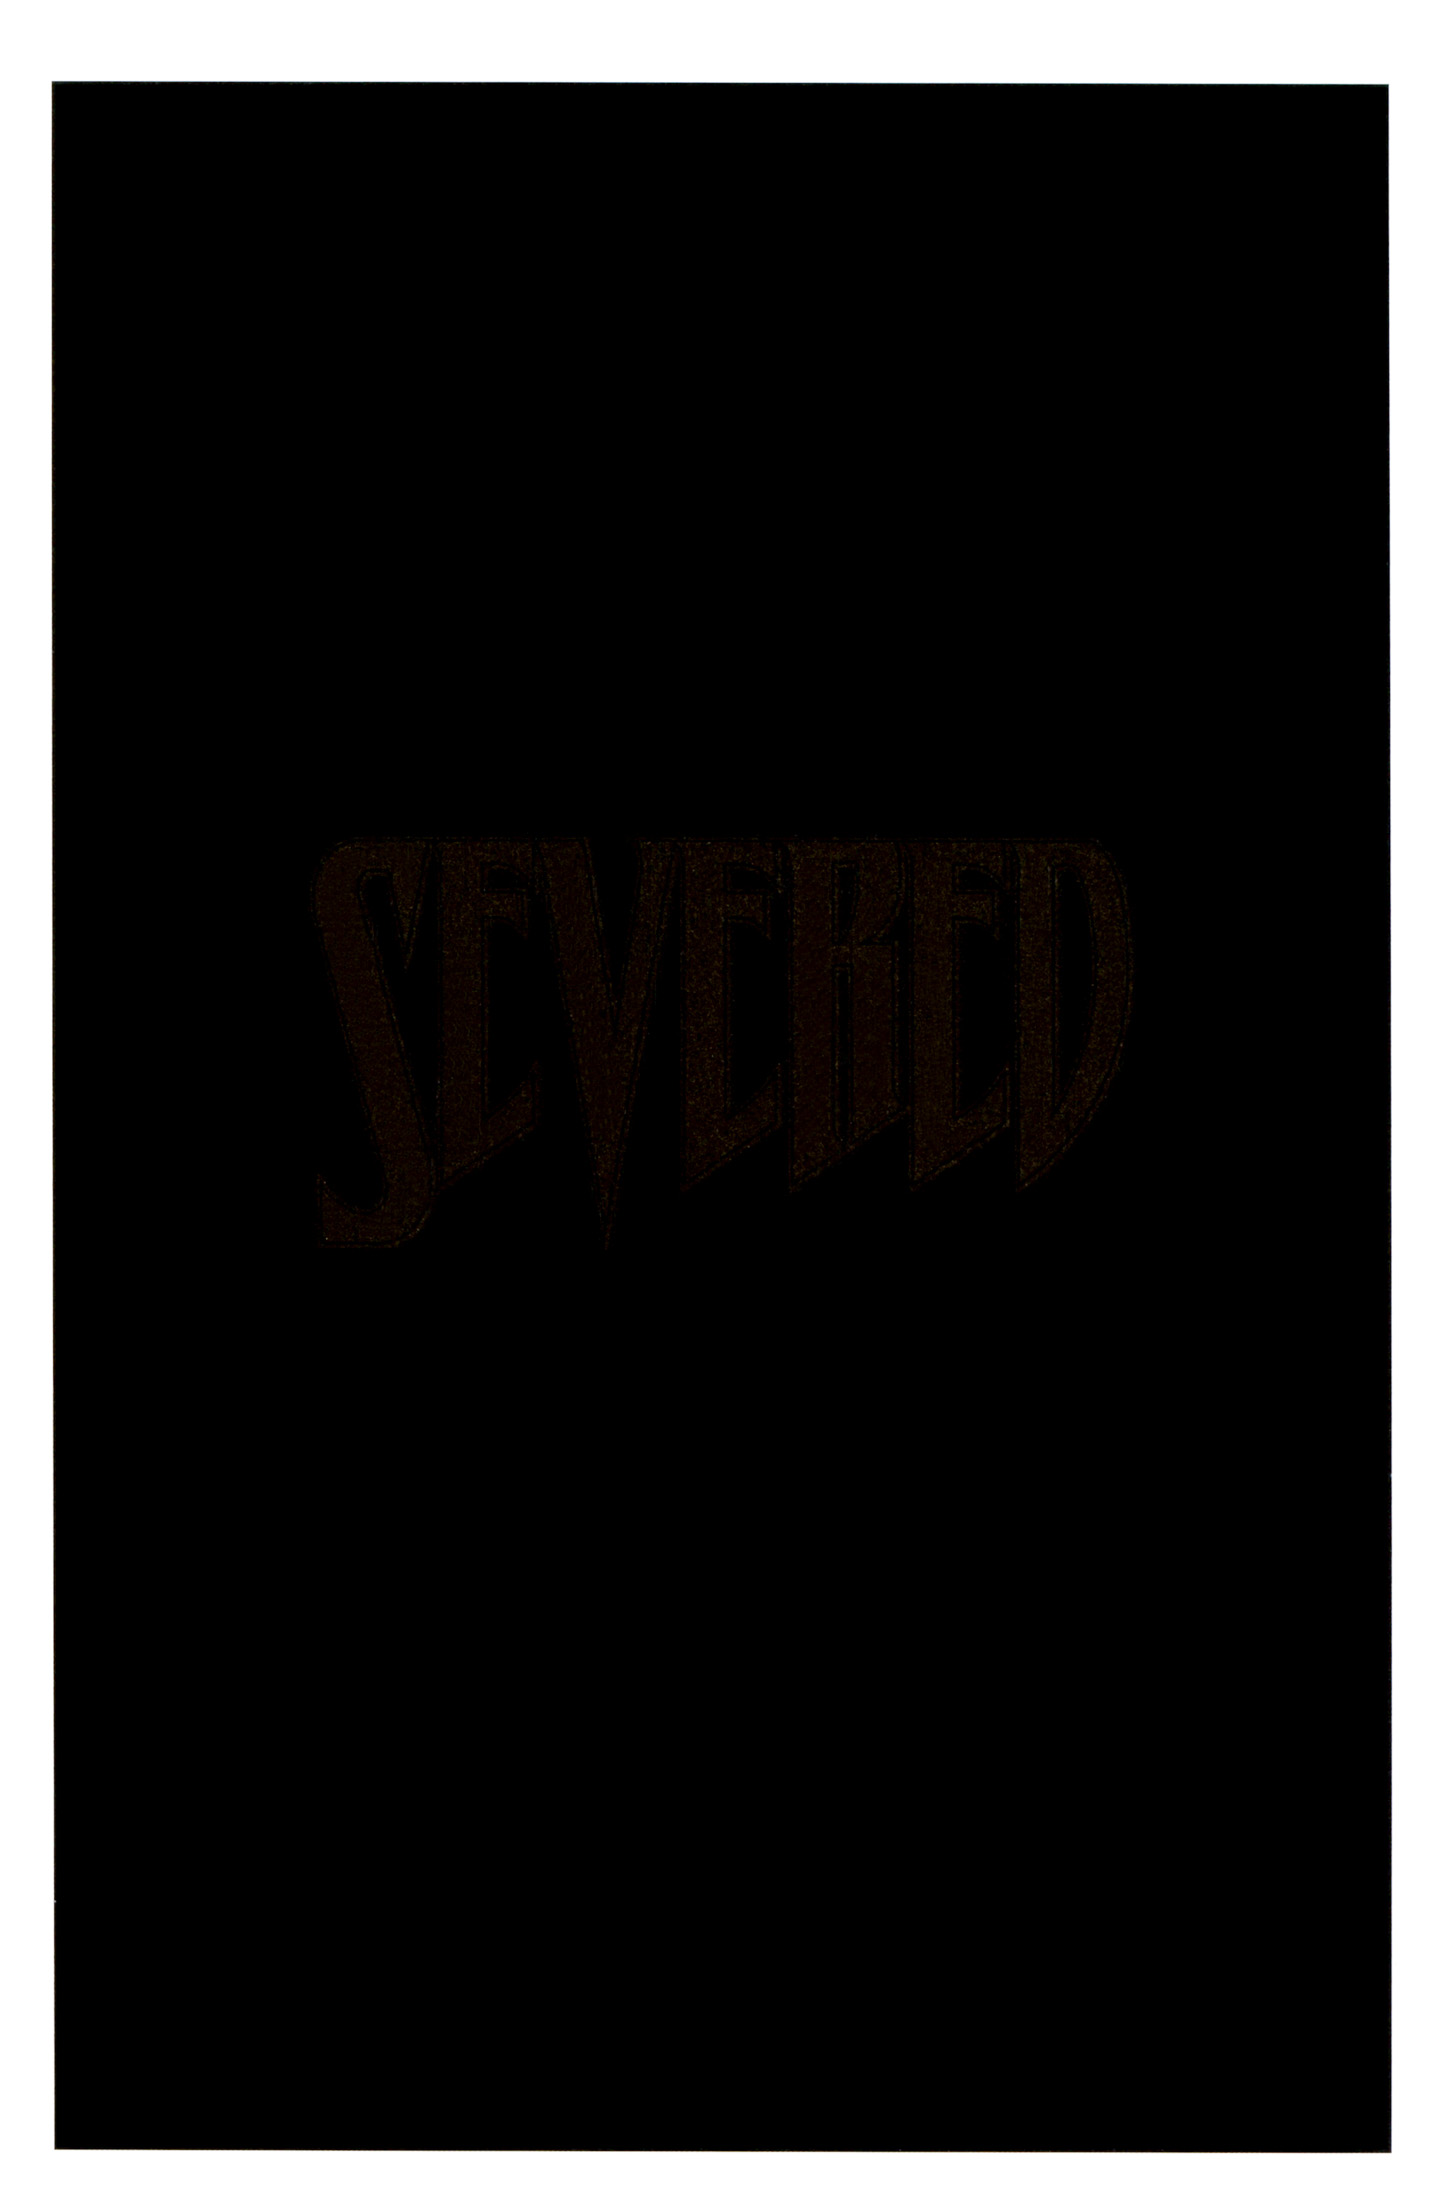 Read online Severed comic -  Issue #7 - 31